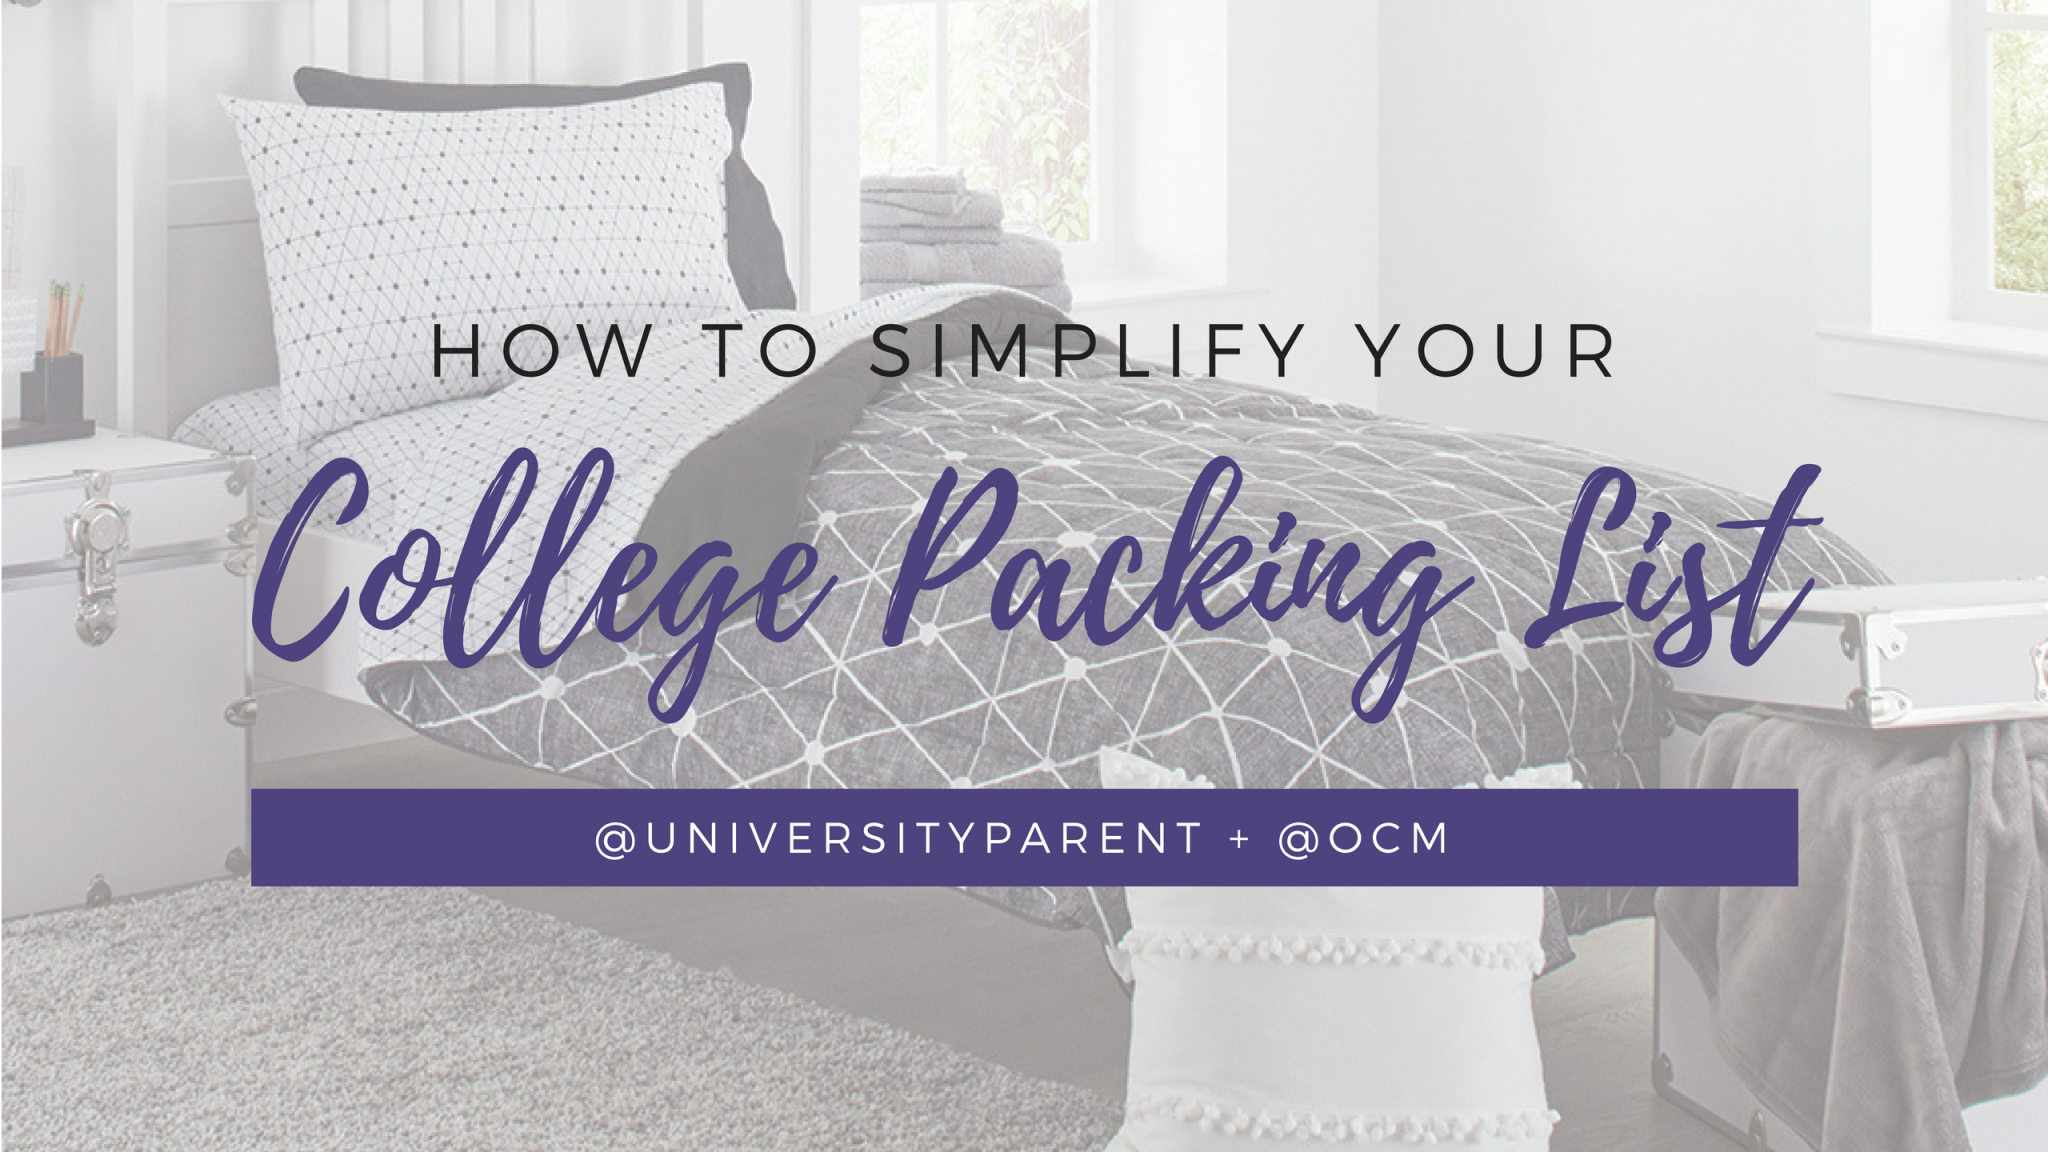 How to Simplify Your College Packing List